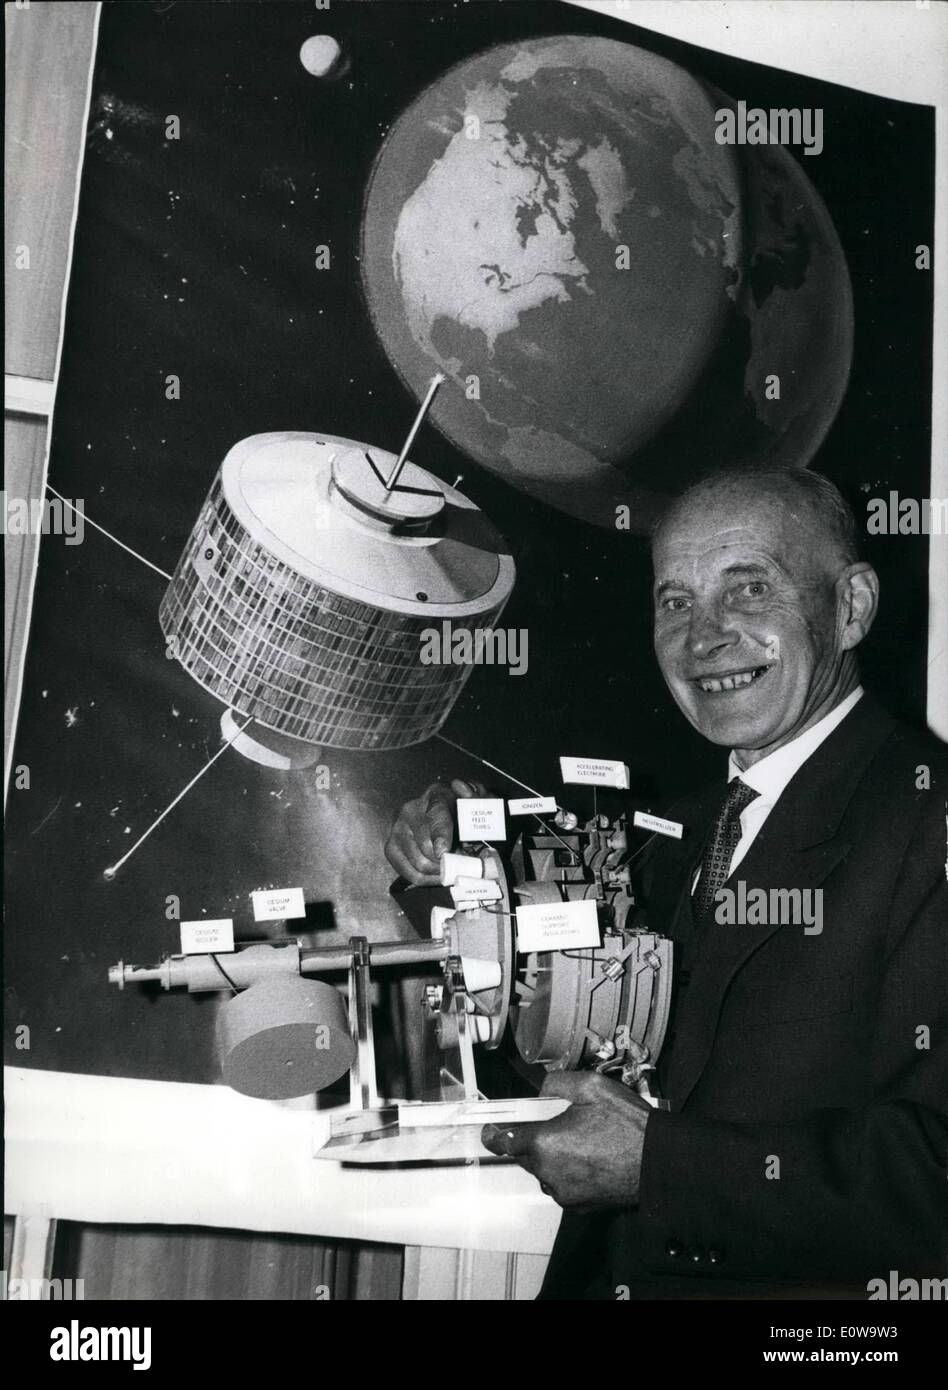 Apr. 04, 1962 - With a speed of over two million miles a day to Mars: Part of the news awaiting the visitors of the aviation show which has been opened in Hannover, today, are propulsion engines for rockets to be held in one hand. This small electric propulsion engine which expels ionized cessium atoms will be able to push a manned aircraft to Mars at a speed of over two million miles a day - Stock Image